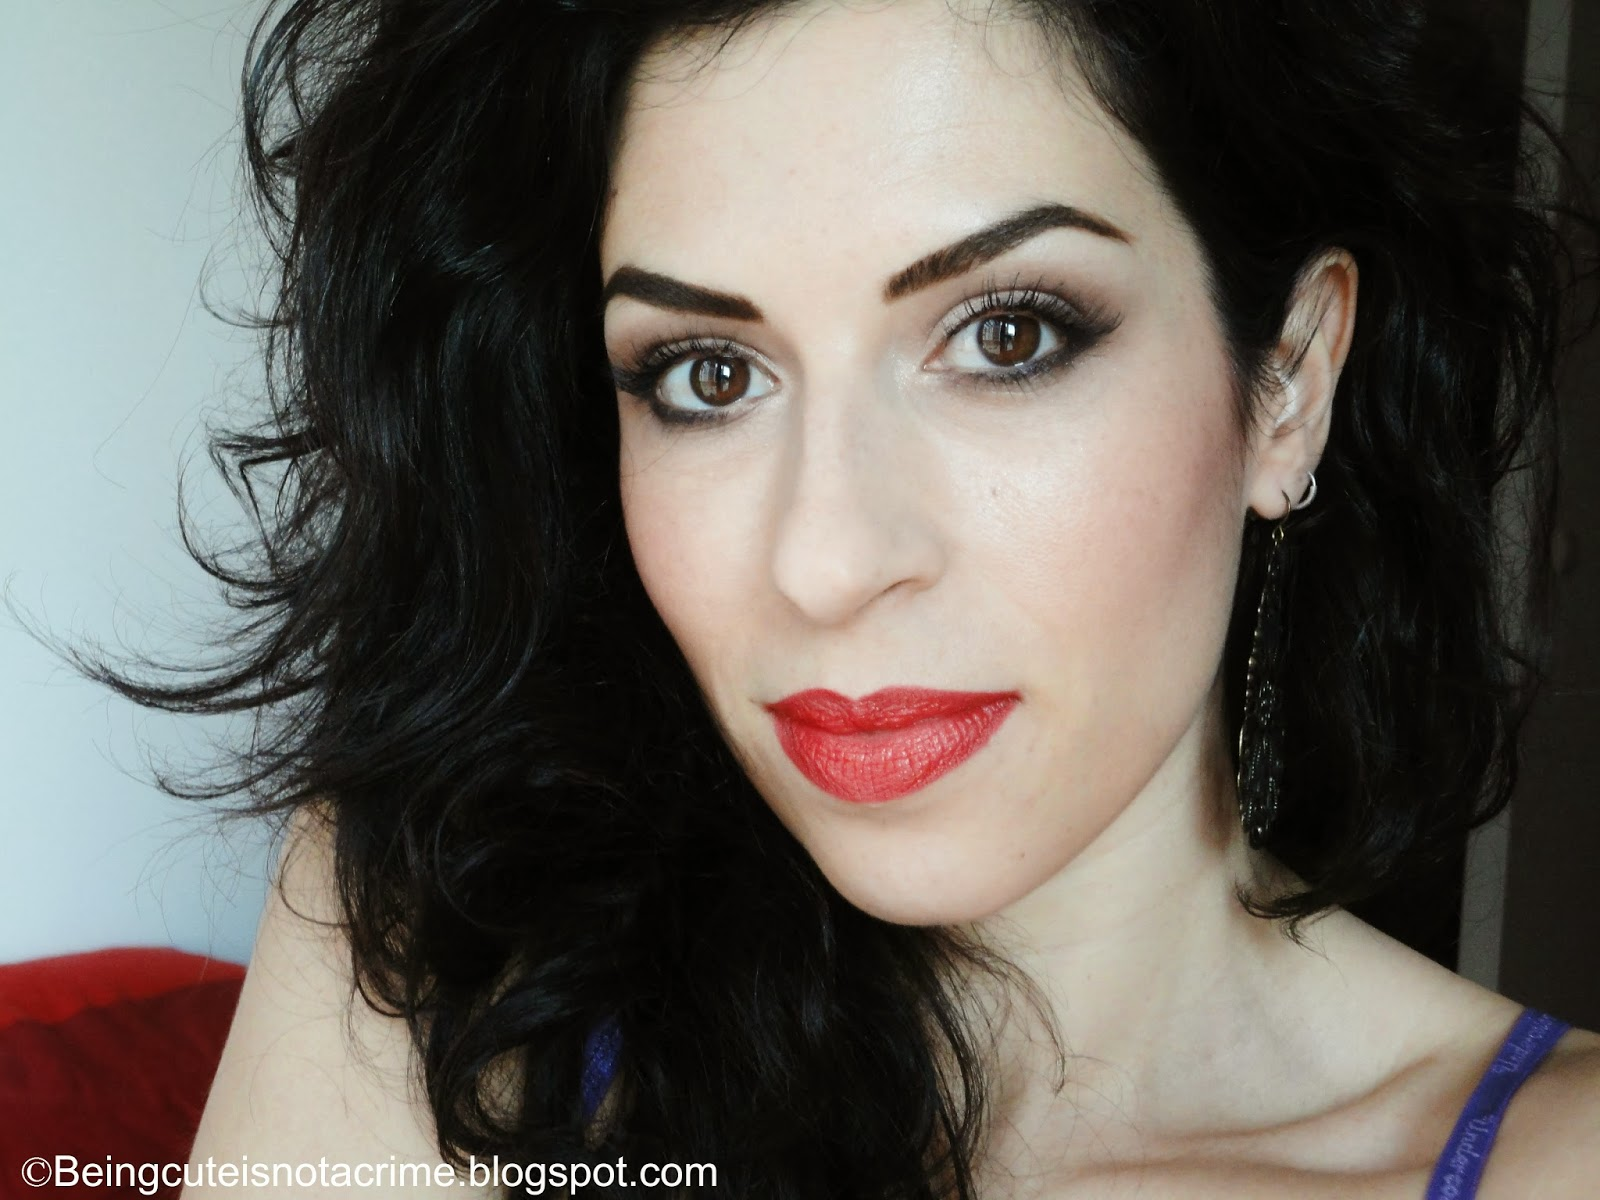 http://beingcuteisnotacrime.blogspot.nl/2014/02/orange-lips-lisa-eldridge-inspiration.html